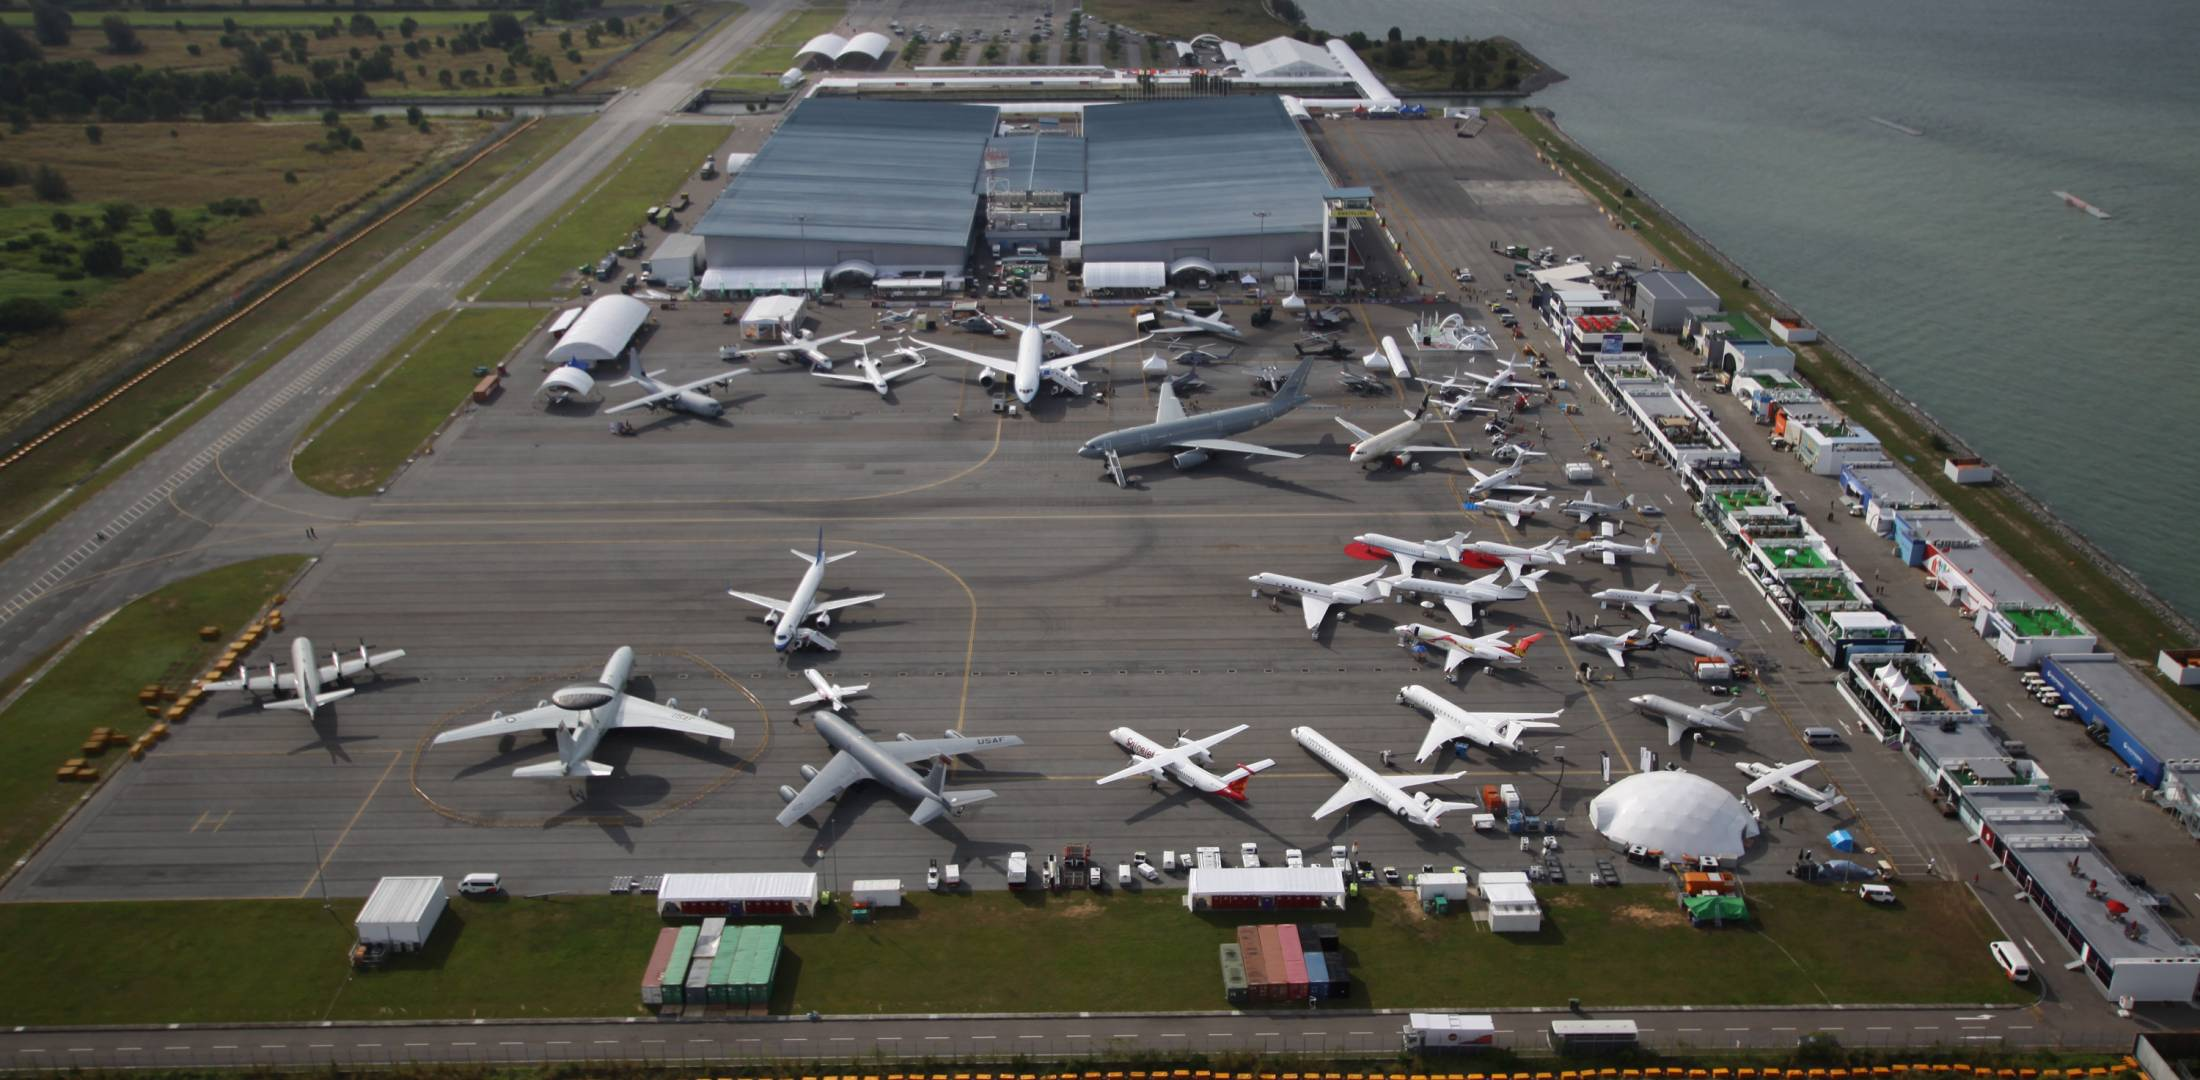 The 2012 Singapore Airshow runs from February 14-19